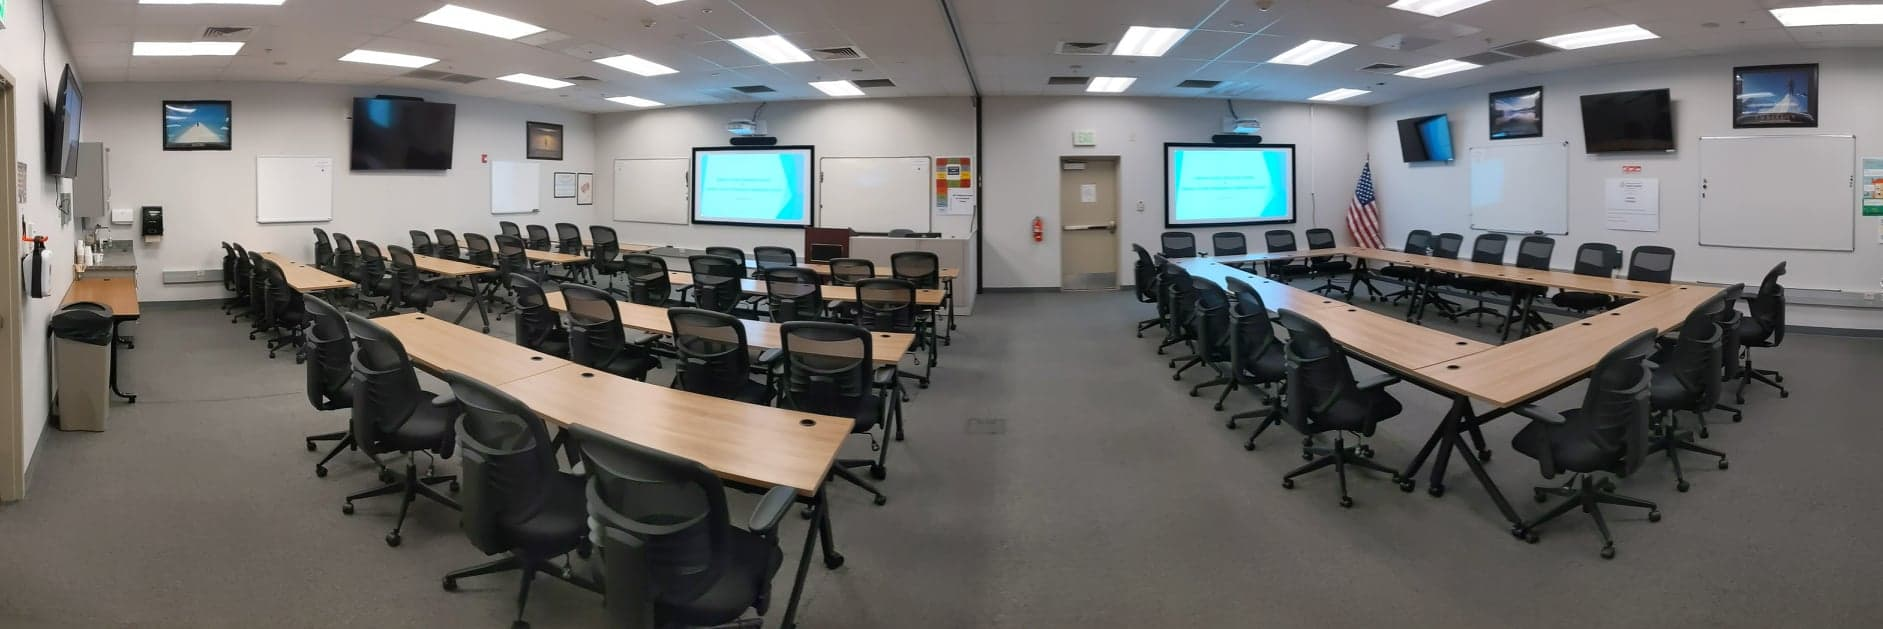 Training Room Student View